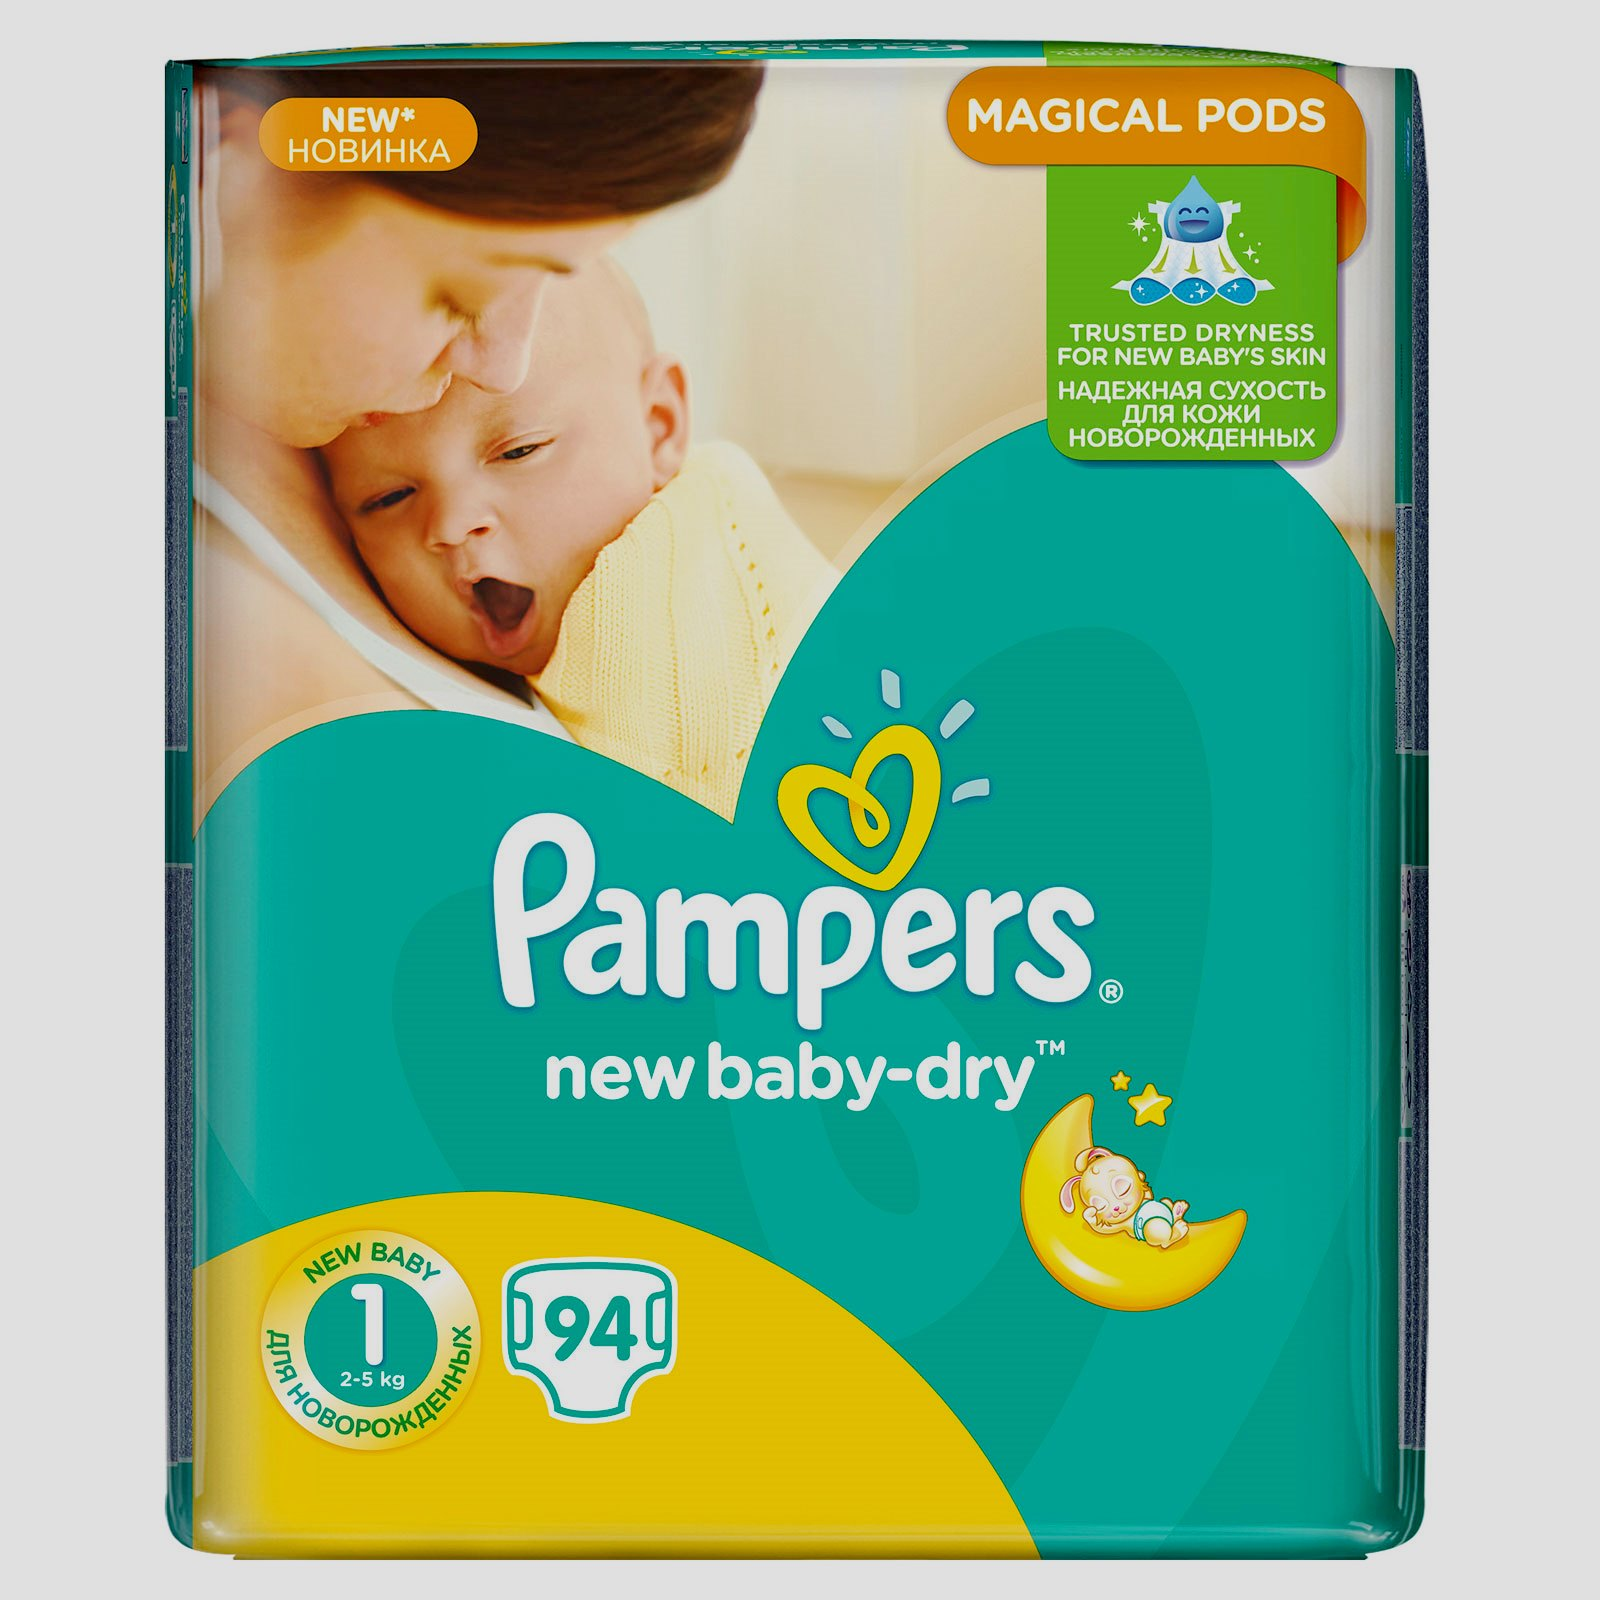 Pampers New Baby Dry 1 (2-5 kg) 94 штуки